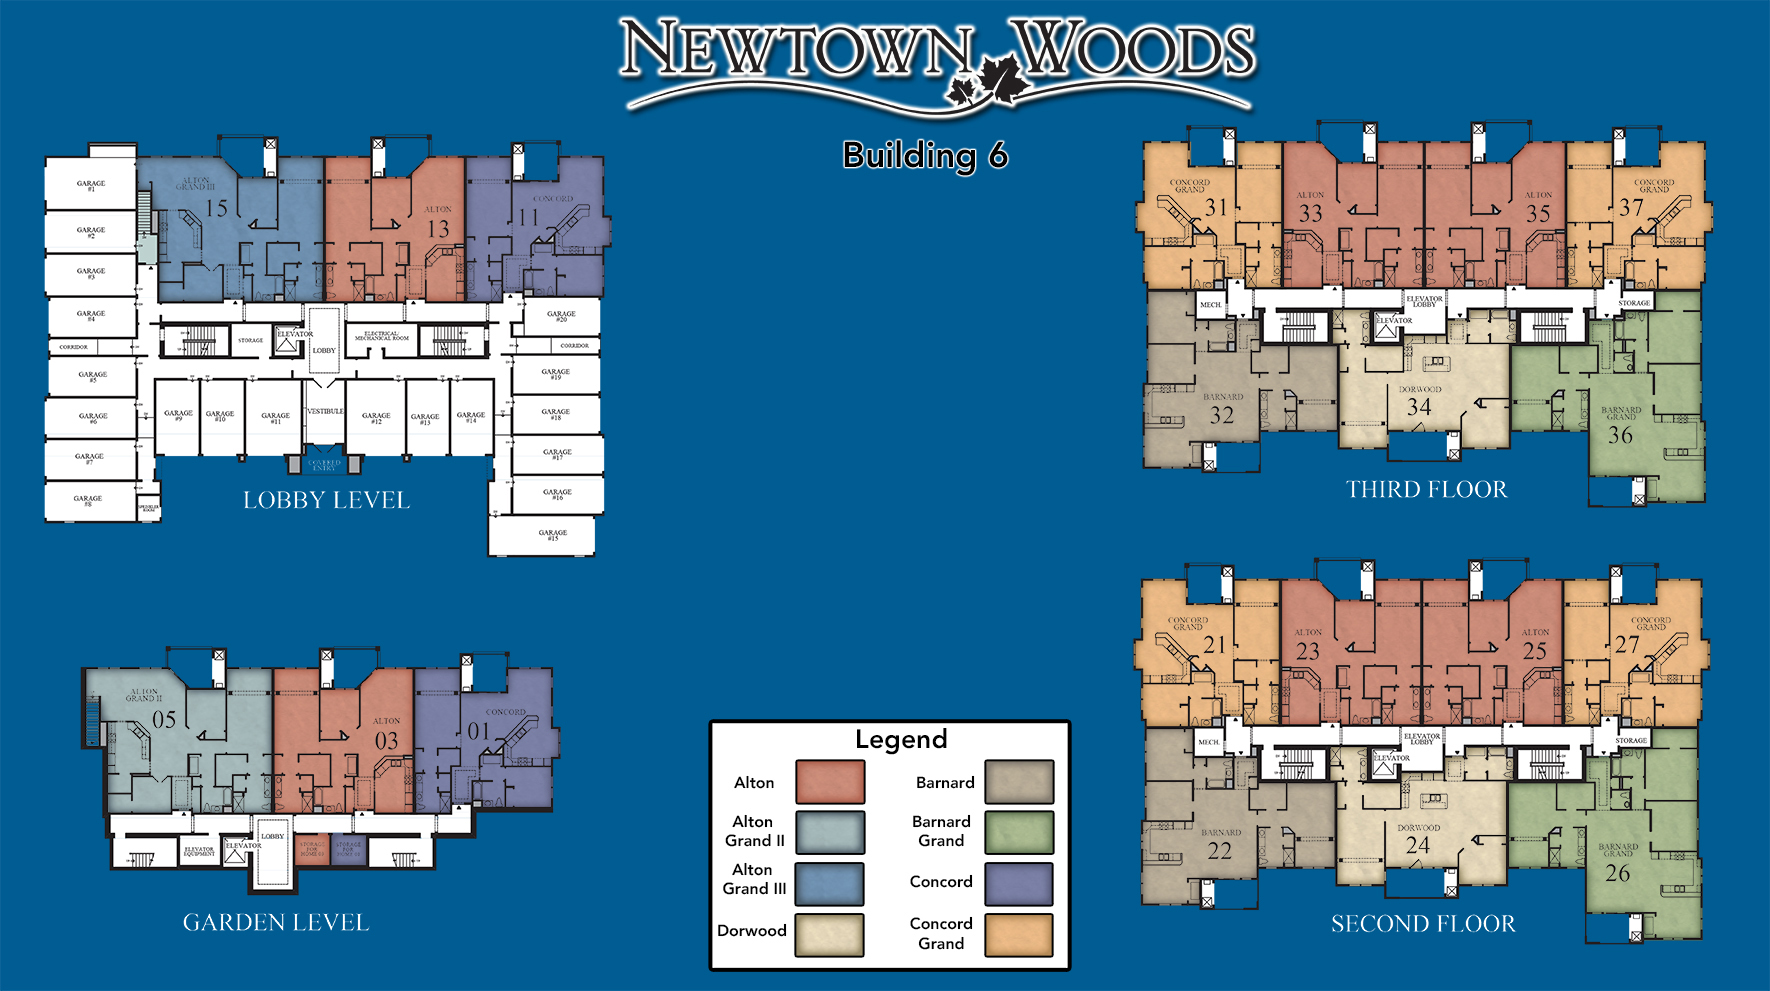 Newtown Woods - Regency Building 6 Site Plan